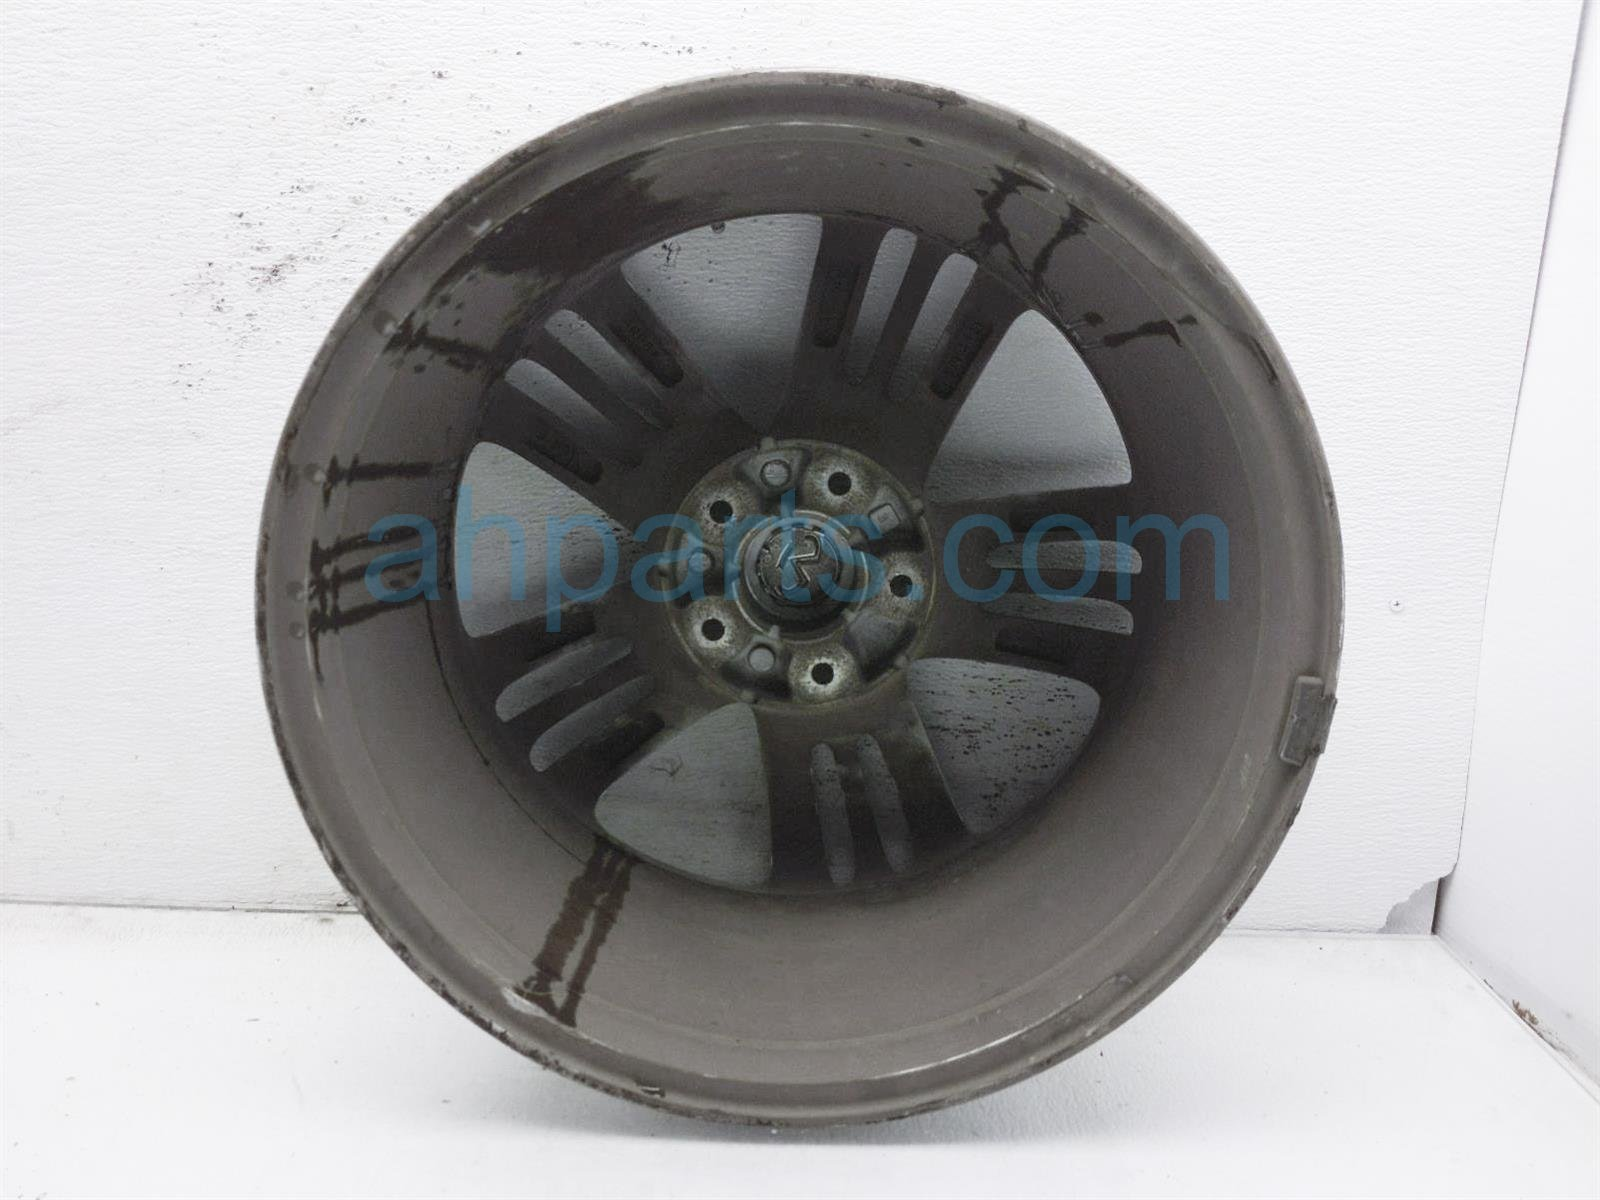 2011 Infiniti G37 Front Passenger Wheel/rim   Some Curb D0300 1NF8A Replacement